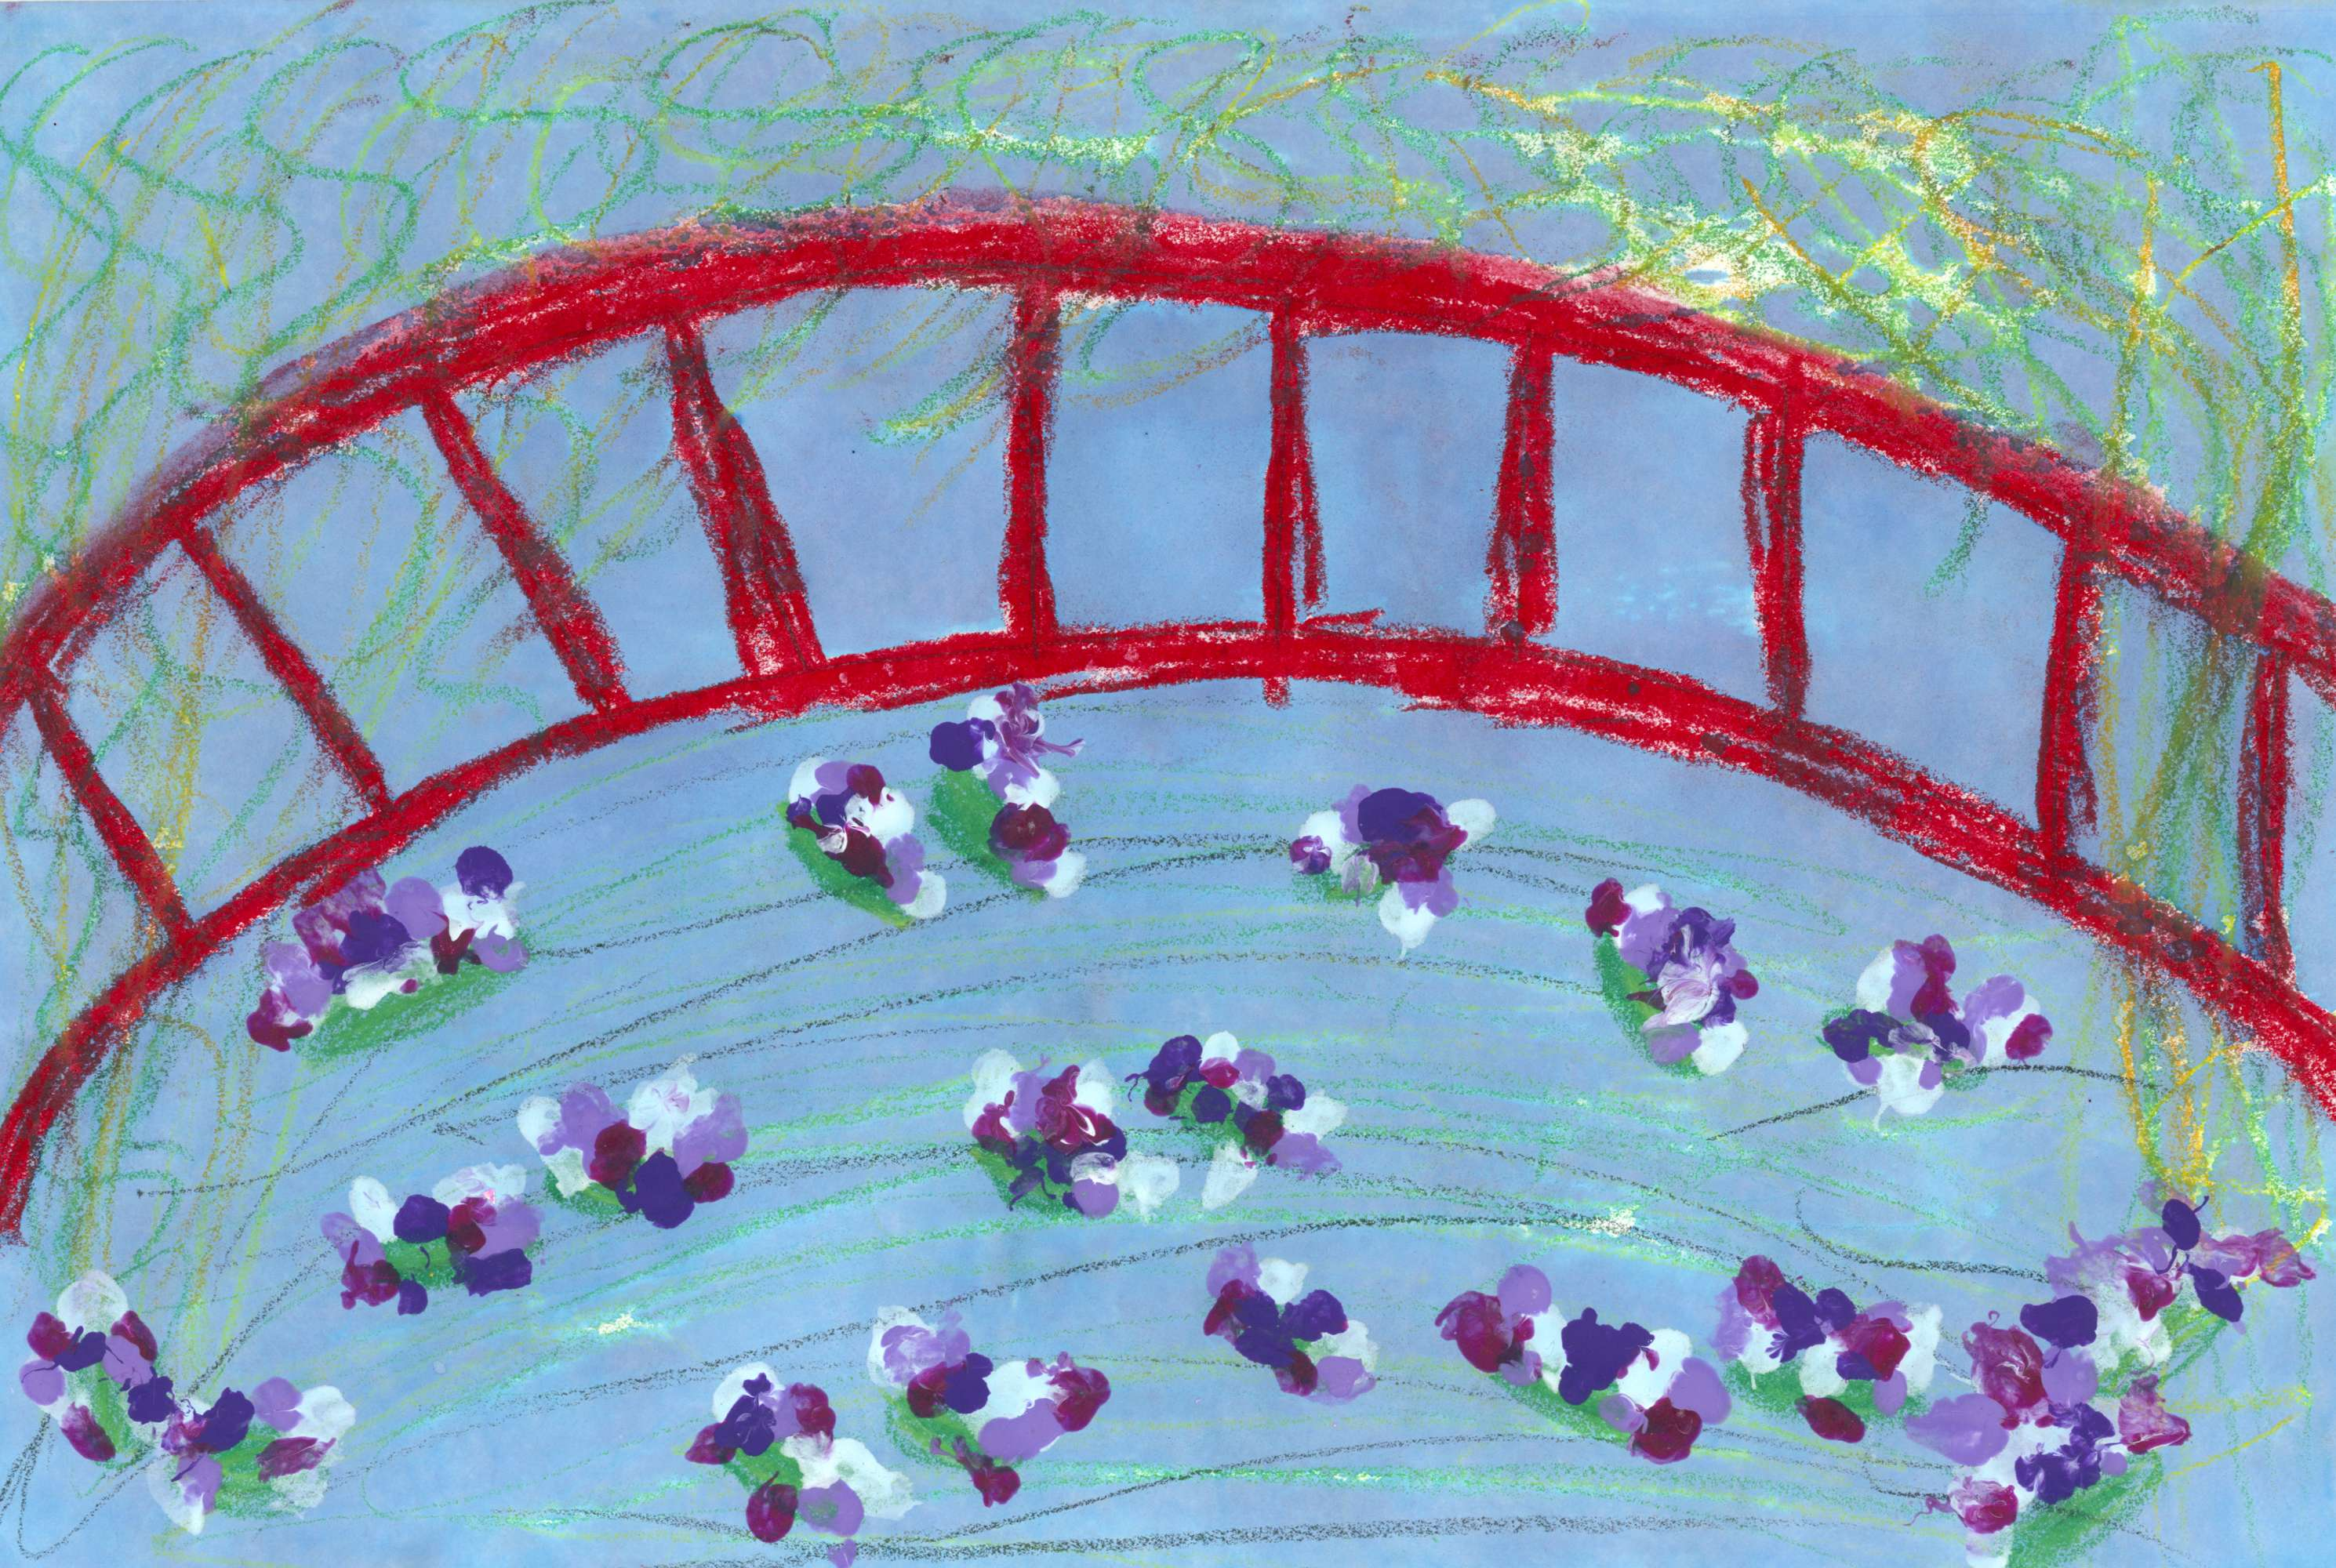 Inspired by Monet's  Water Lily Pond